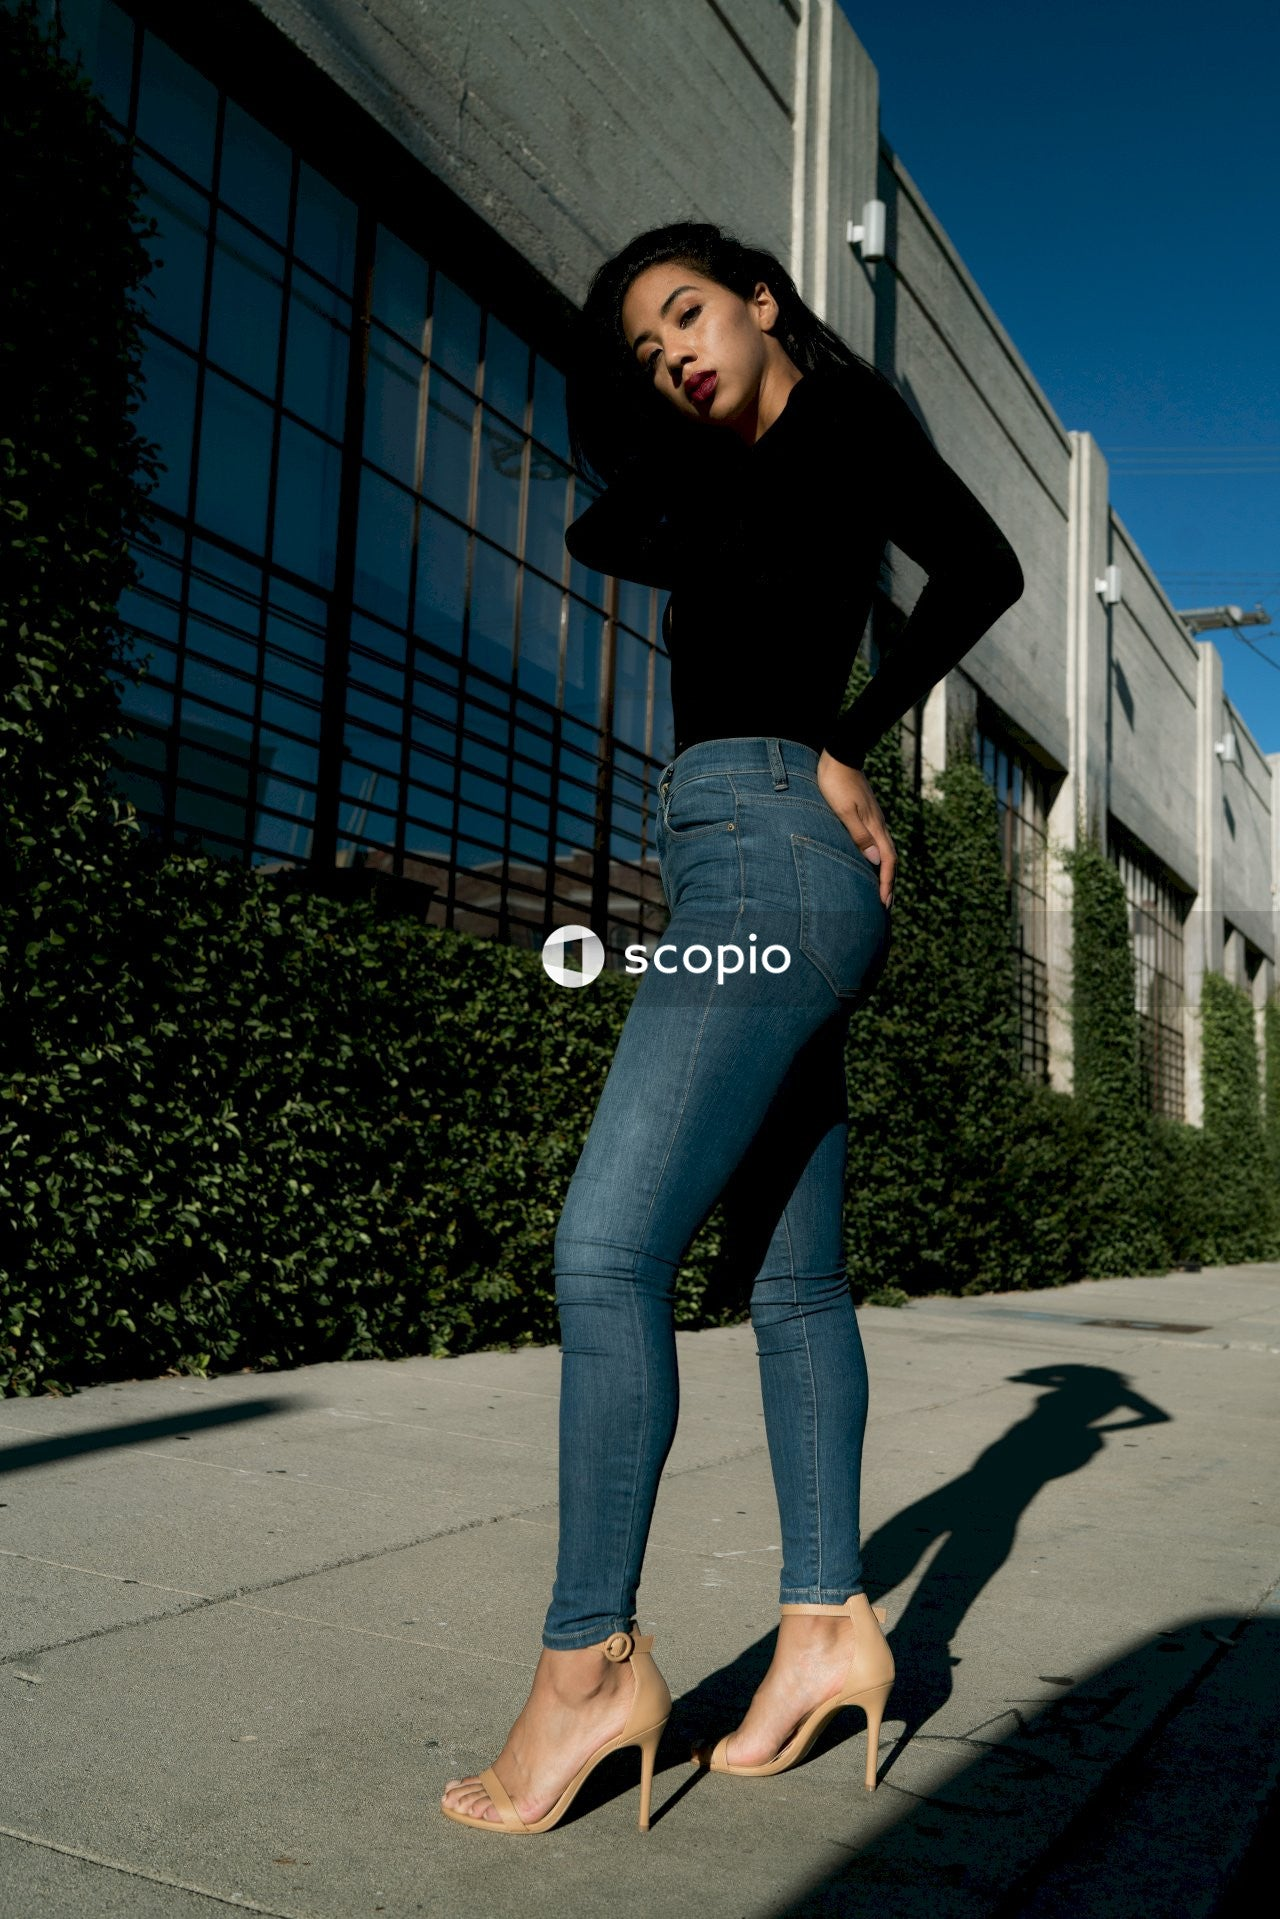 Woman in black long sleeve shirt and blue denim jeans standing on gray concrete floor